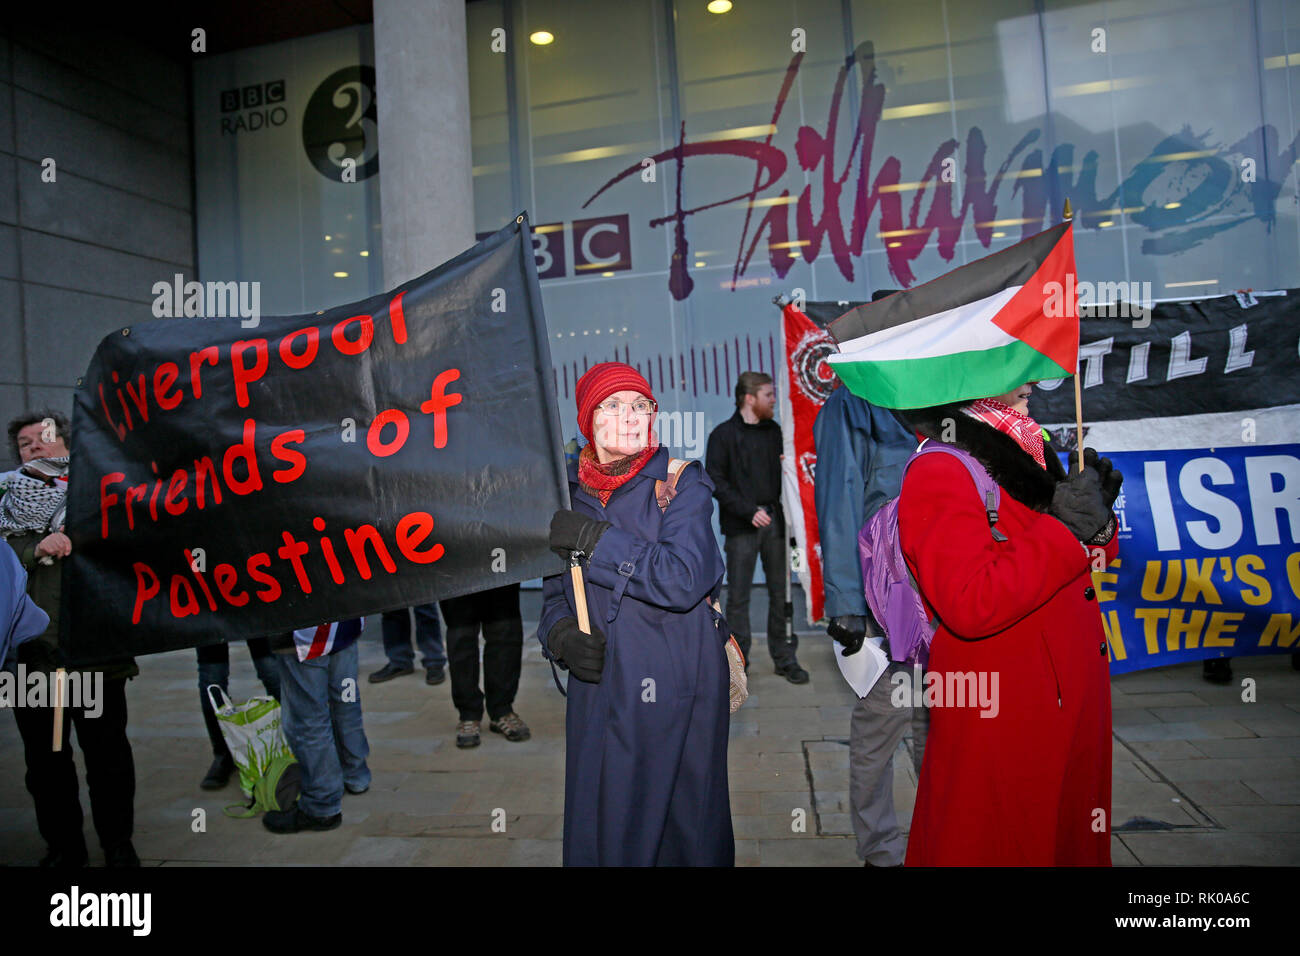 Salford, Greater Manchester, UK. 8th Feb 2019. Pro Palestinian campaigners gather outside the BBC as an audience gathers for the live filming of 'Eurovision you decide'.  Eurovision 2019 will take place in Israel and pro Israeli's also gathered outside the studios  to counter protest  those in support of Palestine who are calling on the BBC to withdraw from the 2019 Eurovision song contest.   BBC, Media City, Salford, UK, 8th February 2019 Credit: Barbara Cook/Alamy Live News - Stock Image